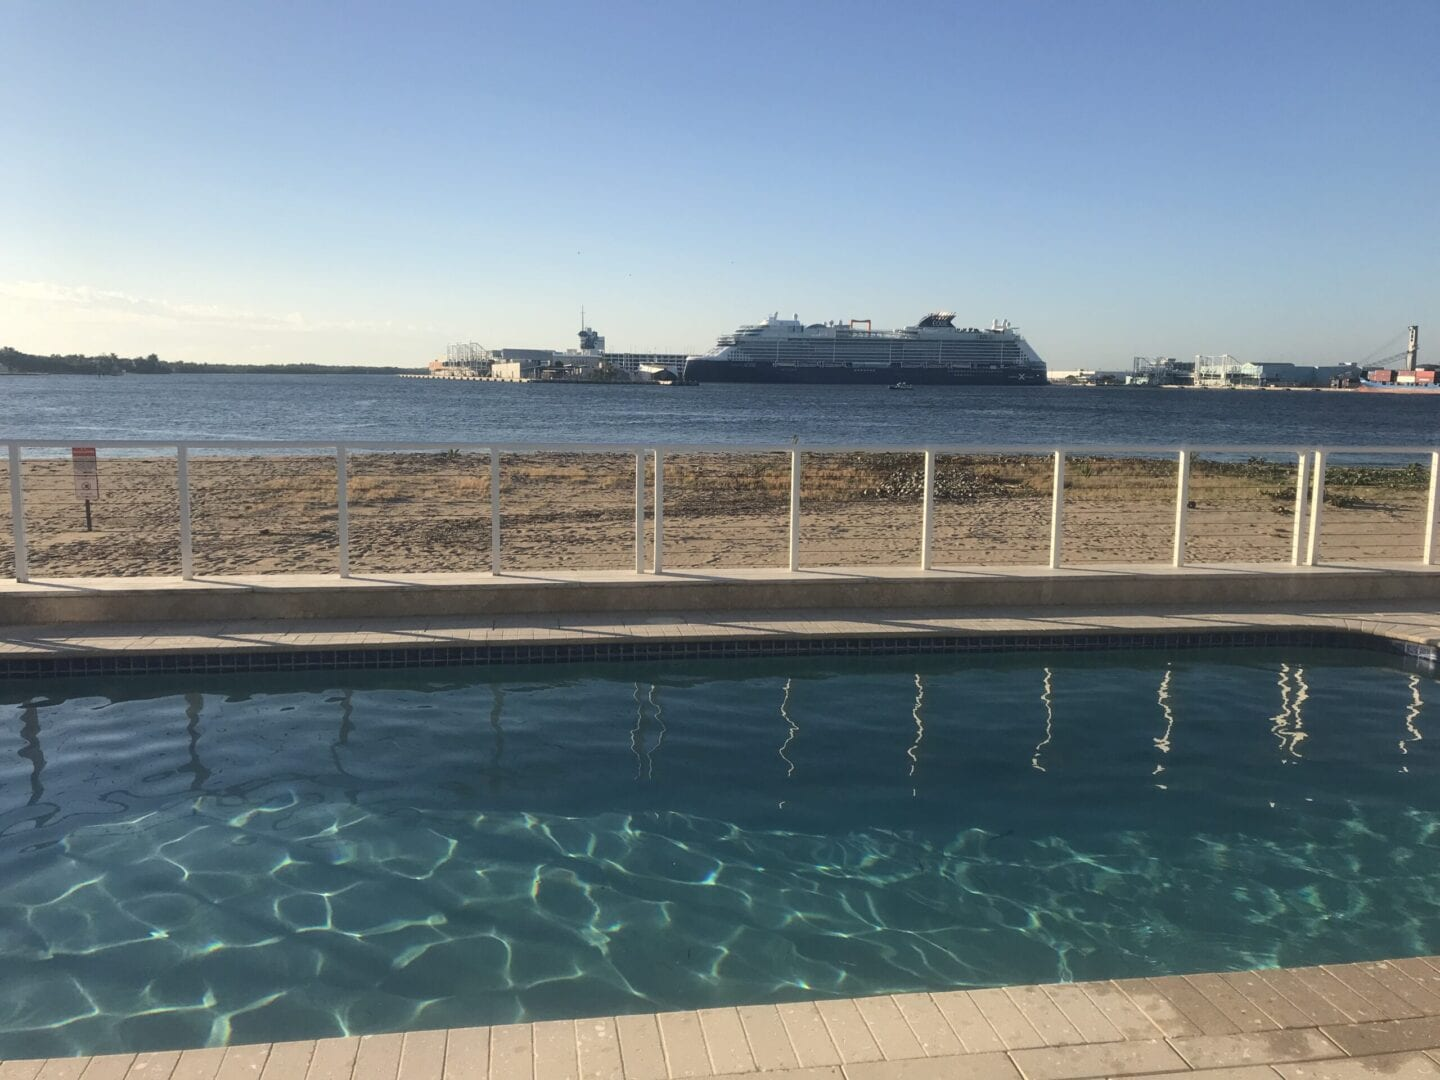 Pool near the ocean, enclosed by a fence